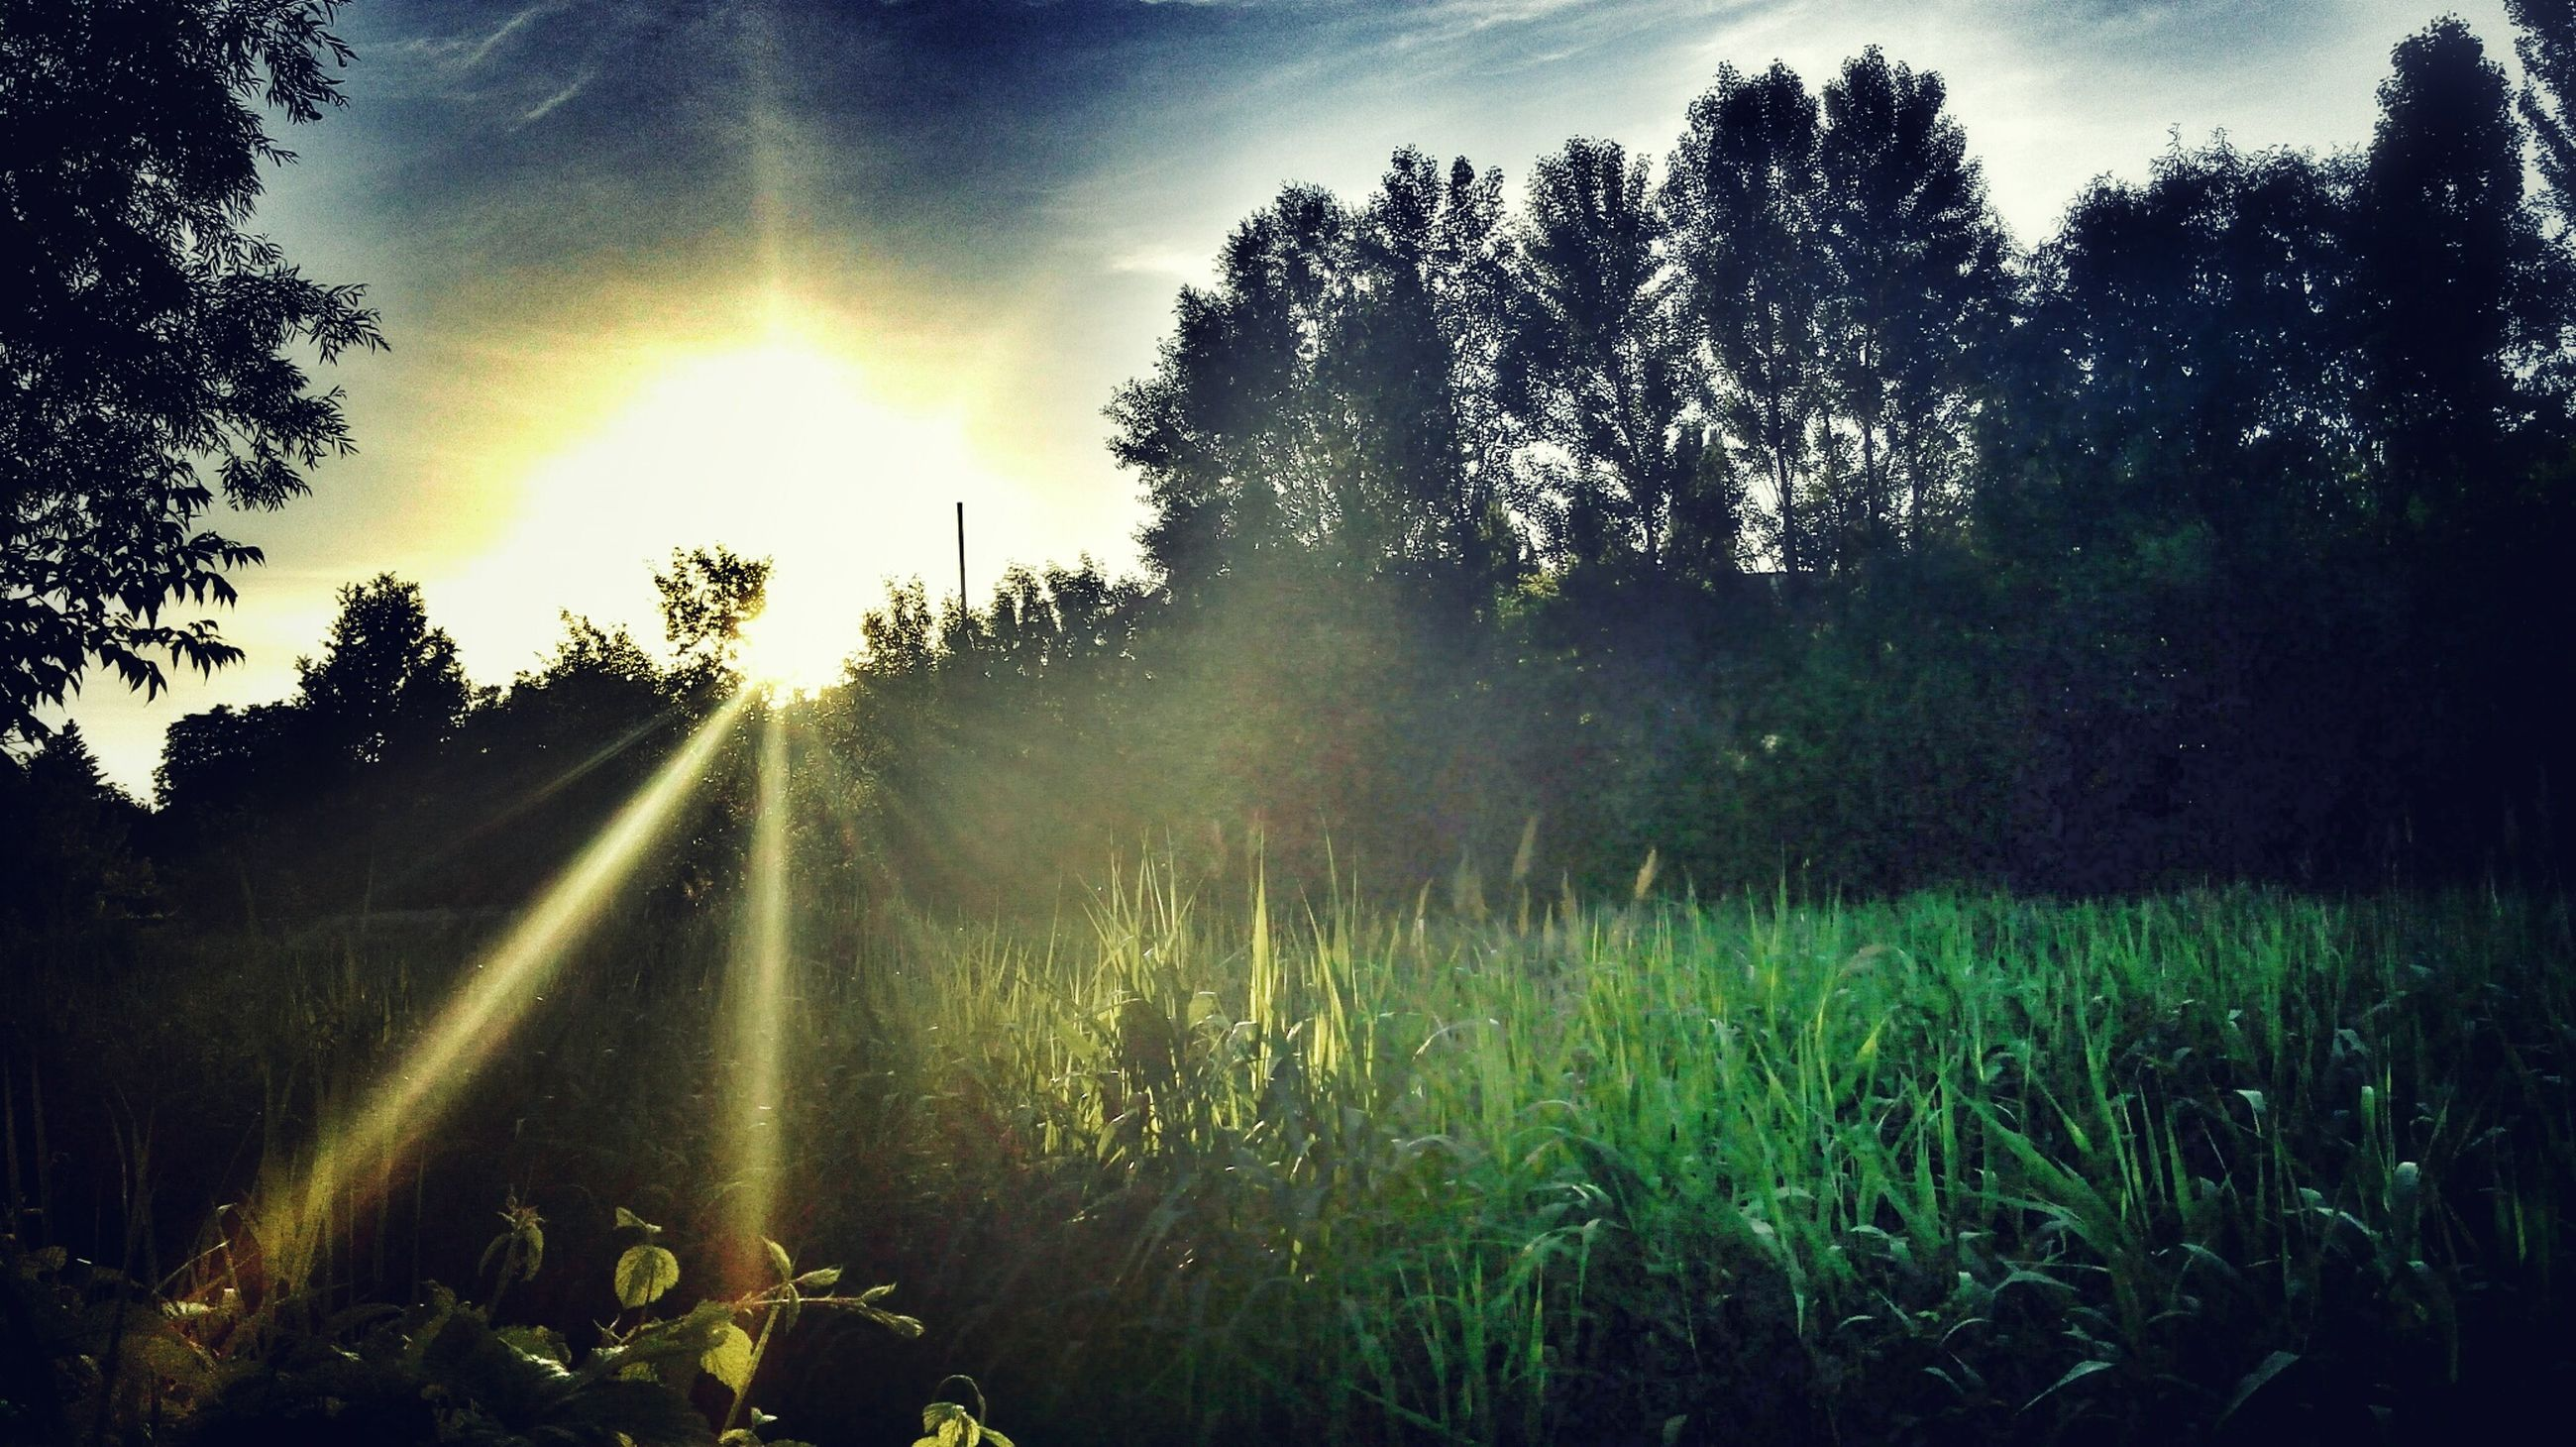 sun, sunbeam, grass, lens flare, sunlight, tree, field, tranquility, sunset, tranquil scene, landscape, grassy, growth, sky, nature, beauty in nature, scenics, green color, plant, idyllic